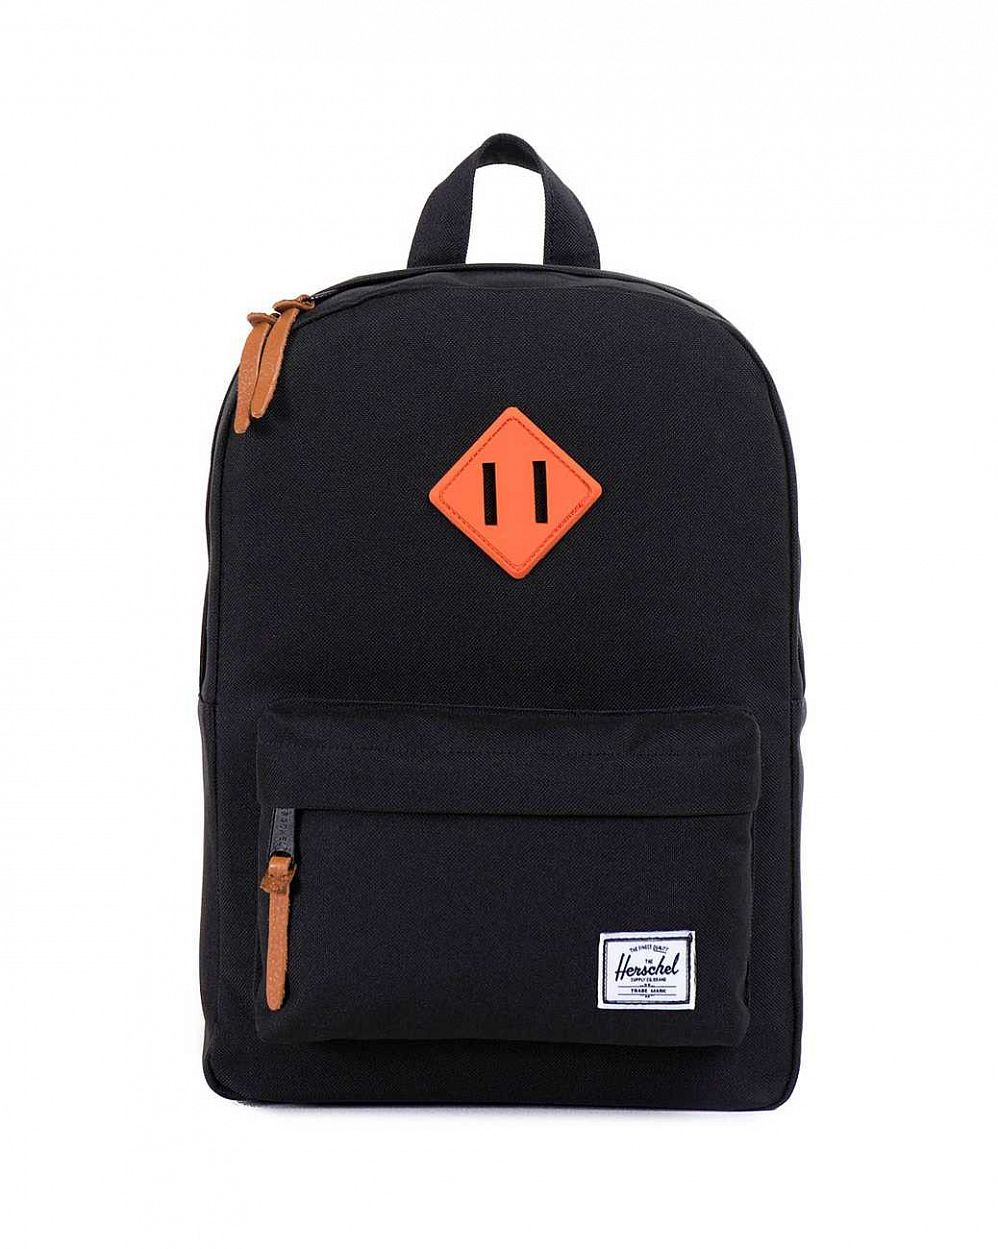 Рюкзак Herschel Heritage Kids Black Neon Orange отзывы